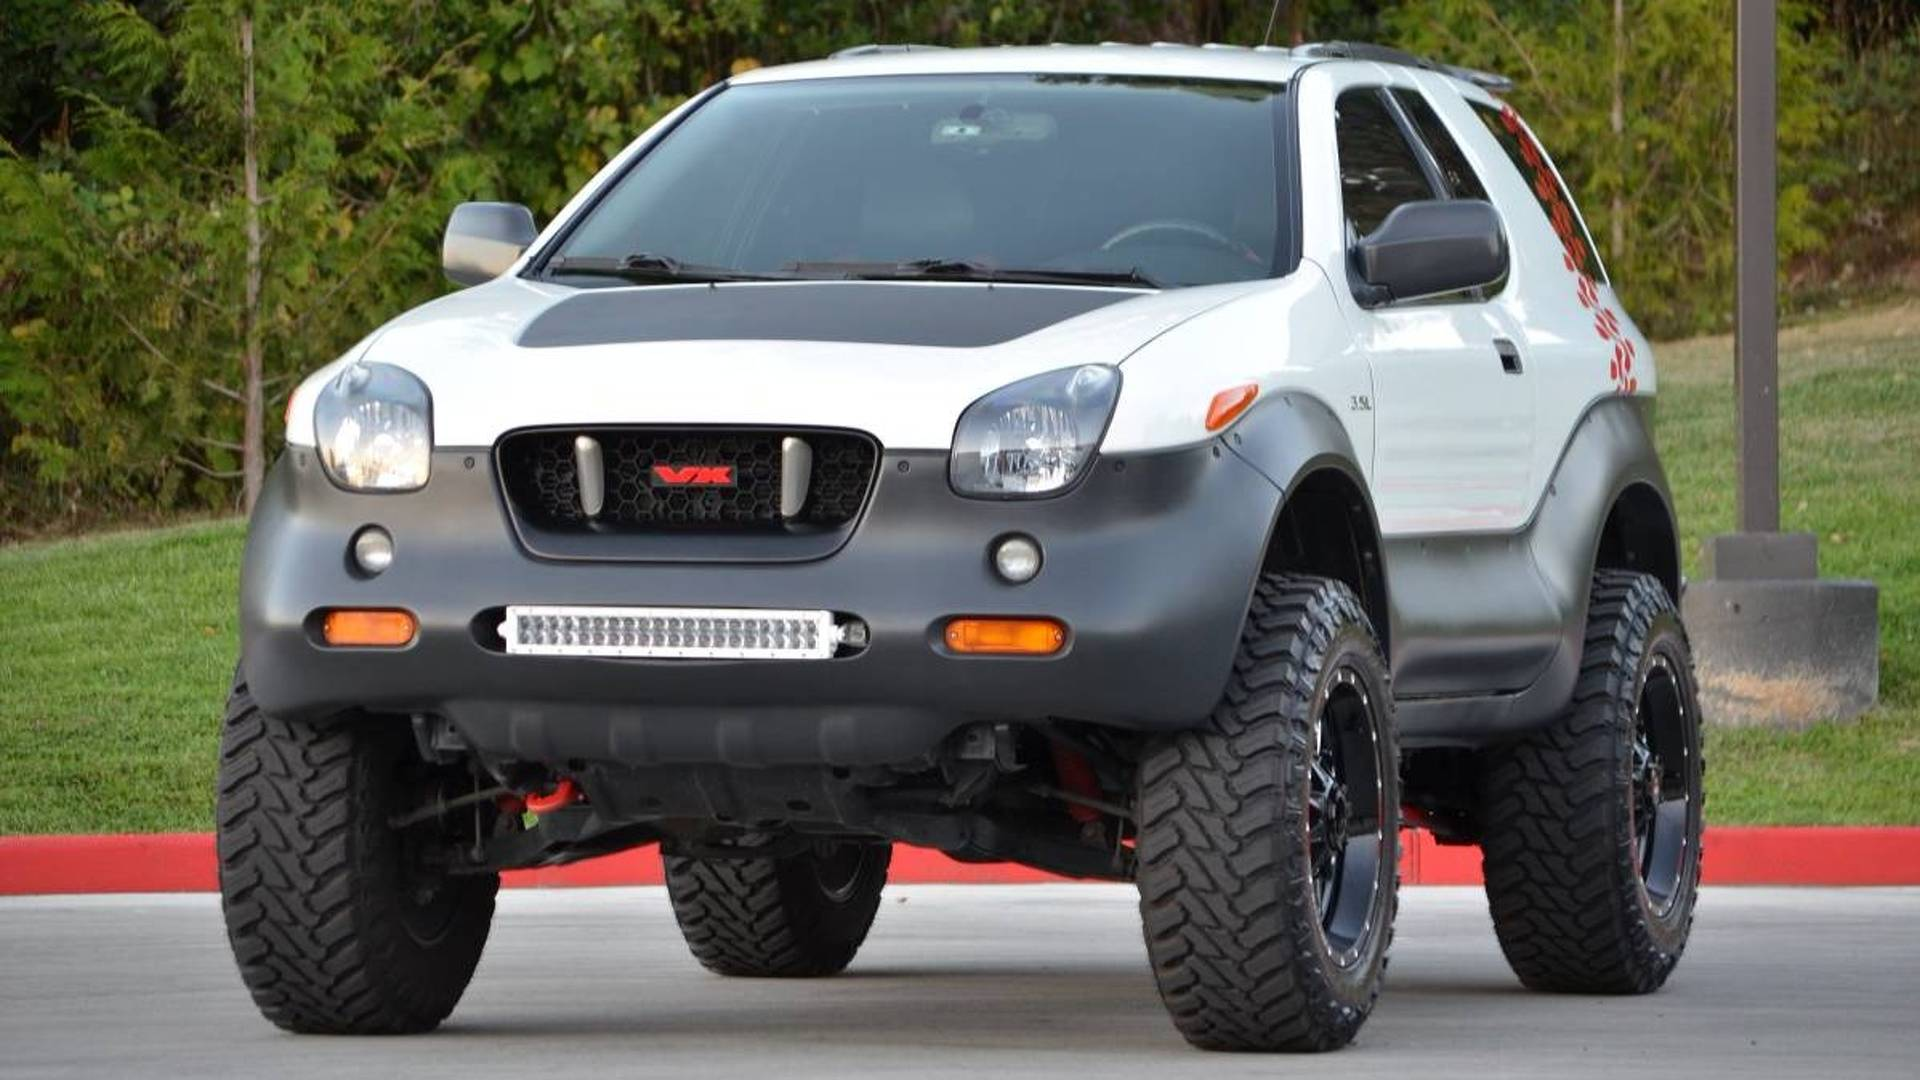 2001-isuzu-vehicross-ironman-edition-for-sale